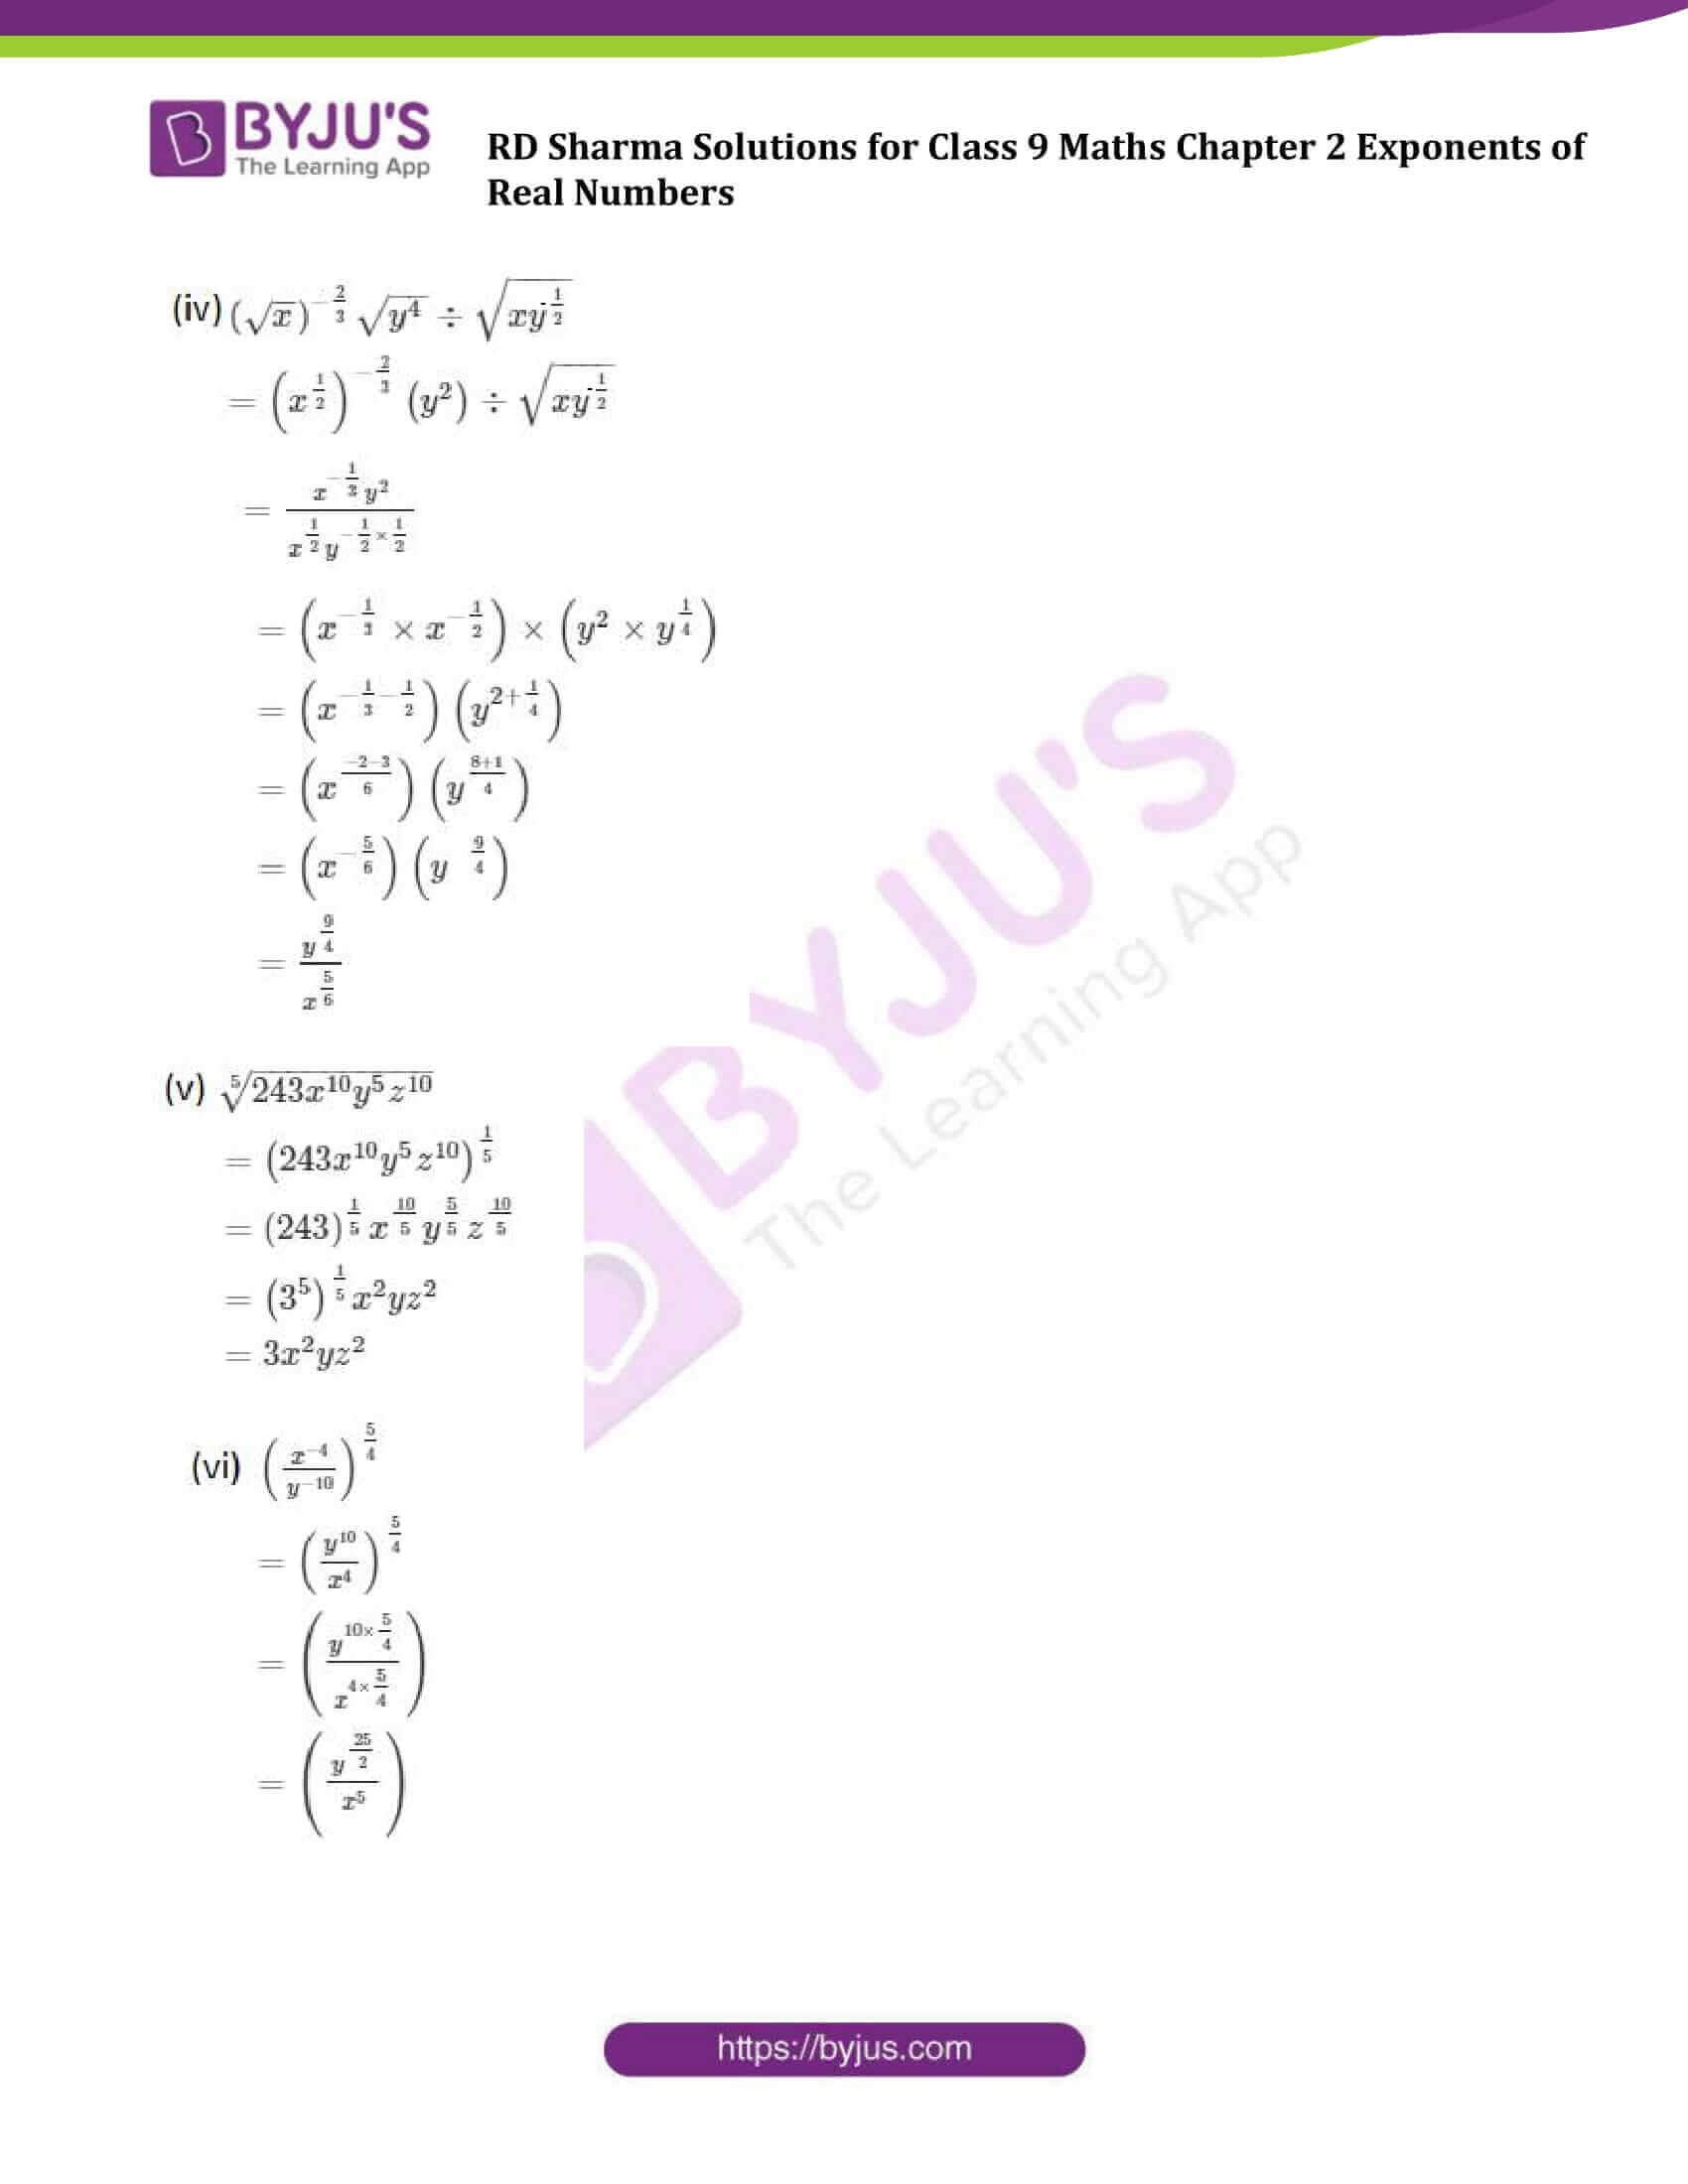 RD Sharma Solution class 9 Maths Chapter 2 Exponents of Real Numbers 10